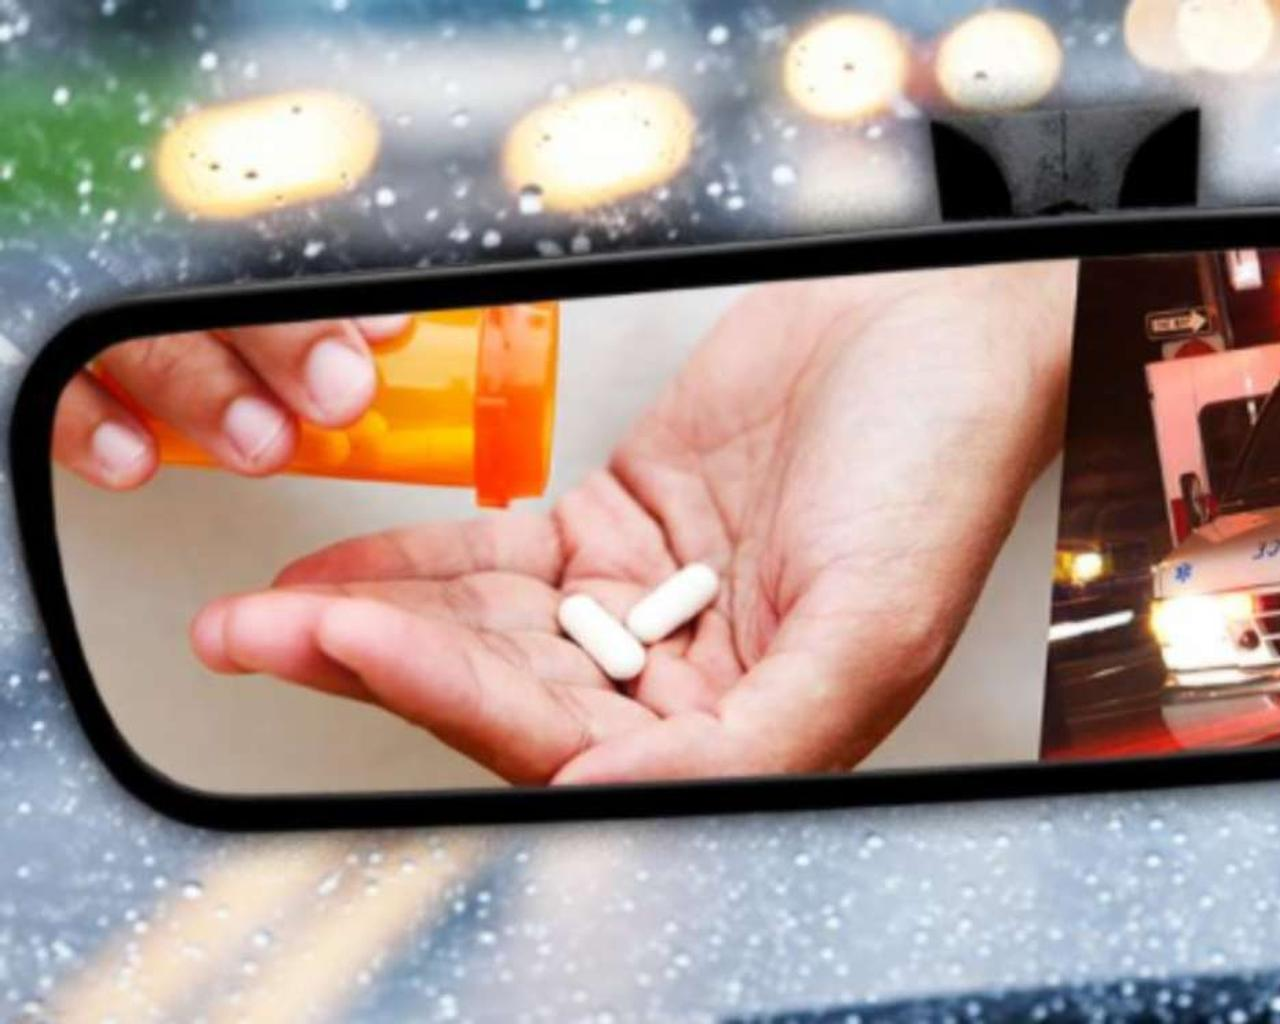 What medications you should avoid if you are going to drive